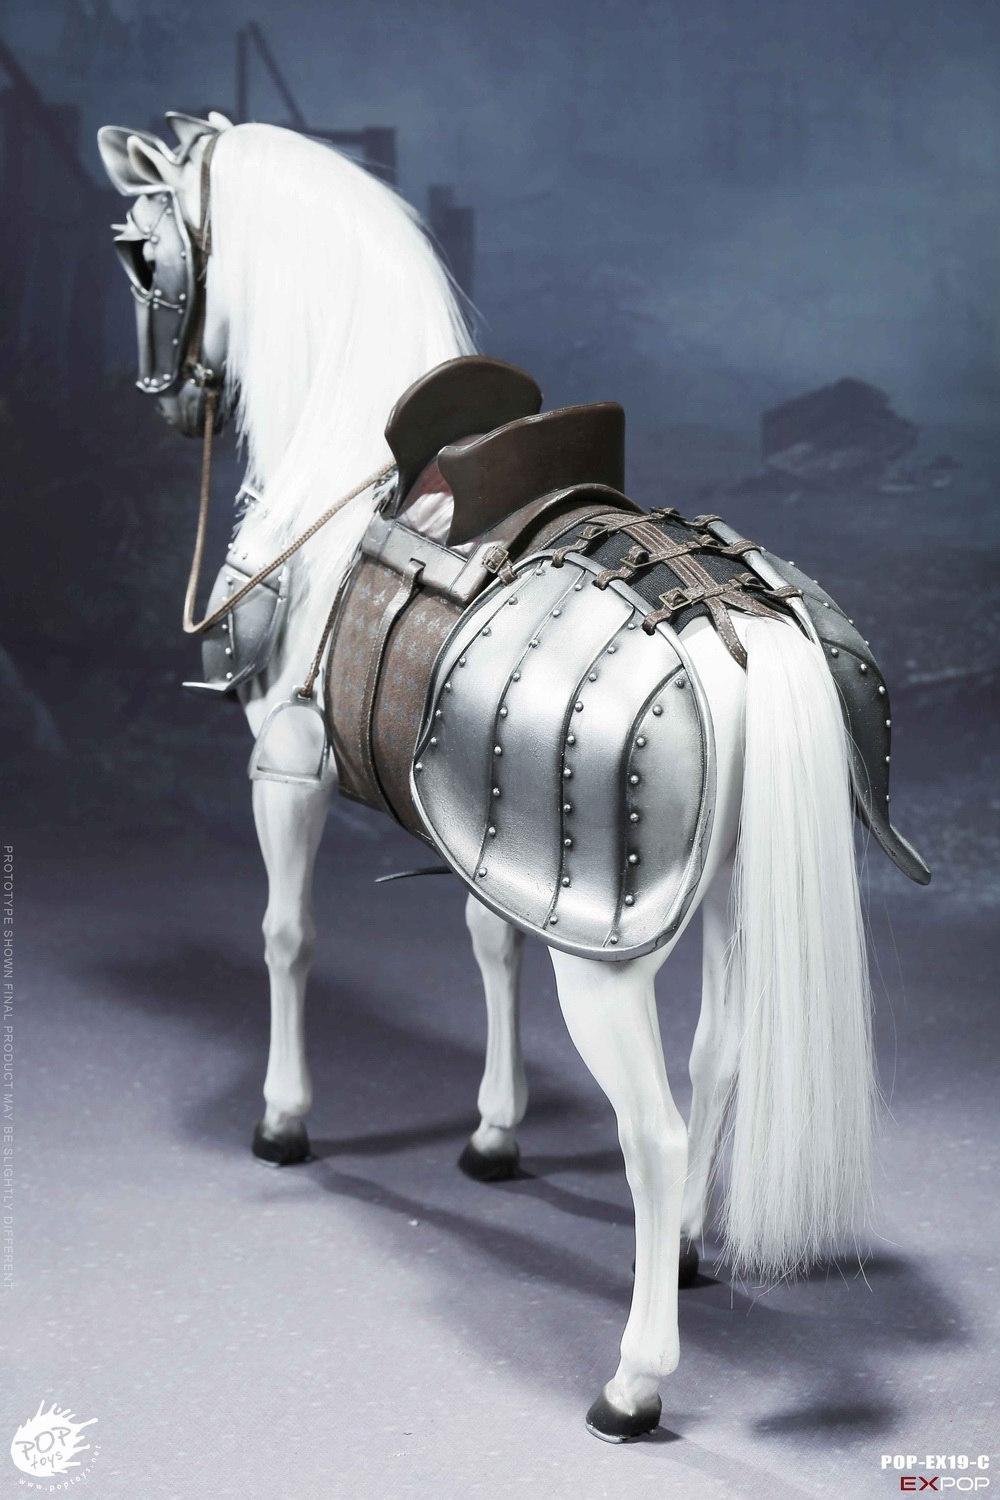 NEW PRODUCT: POPTOYS New Products: 1/6 St. Knights - Assault Edition & Triumph Edition & Iron Armor (POP-EX19 ABC) 16481411